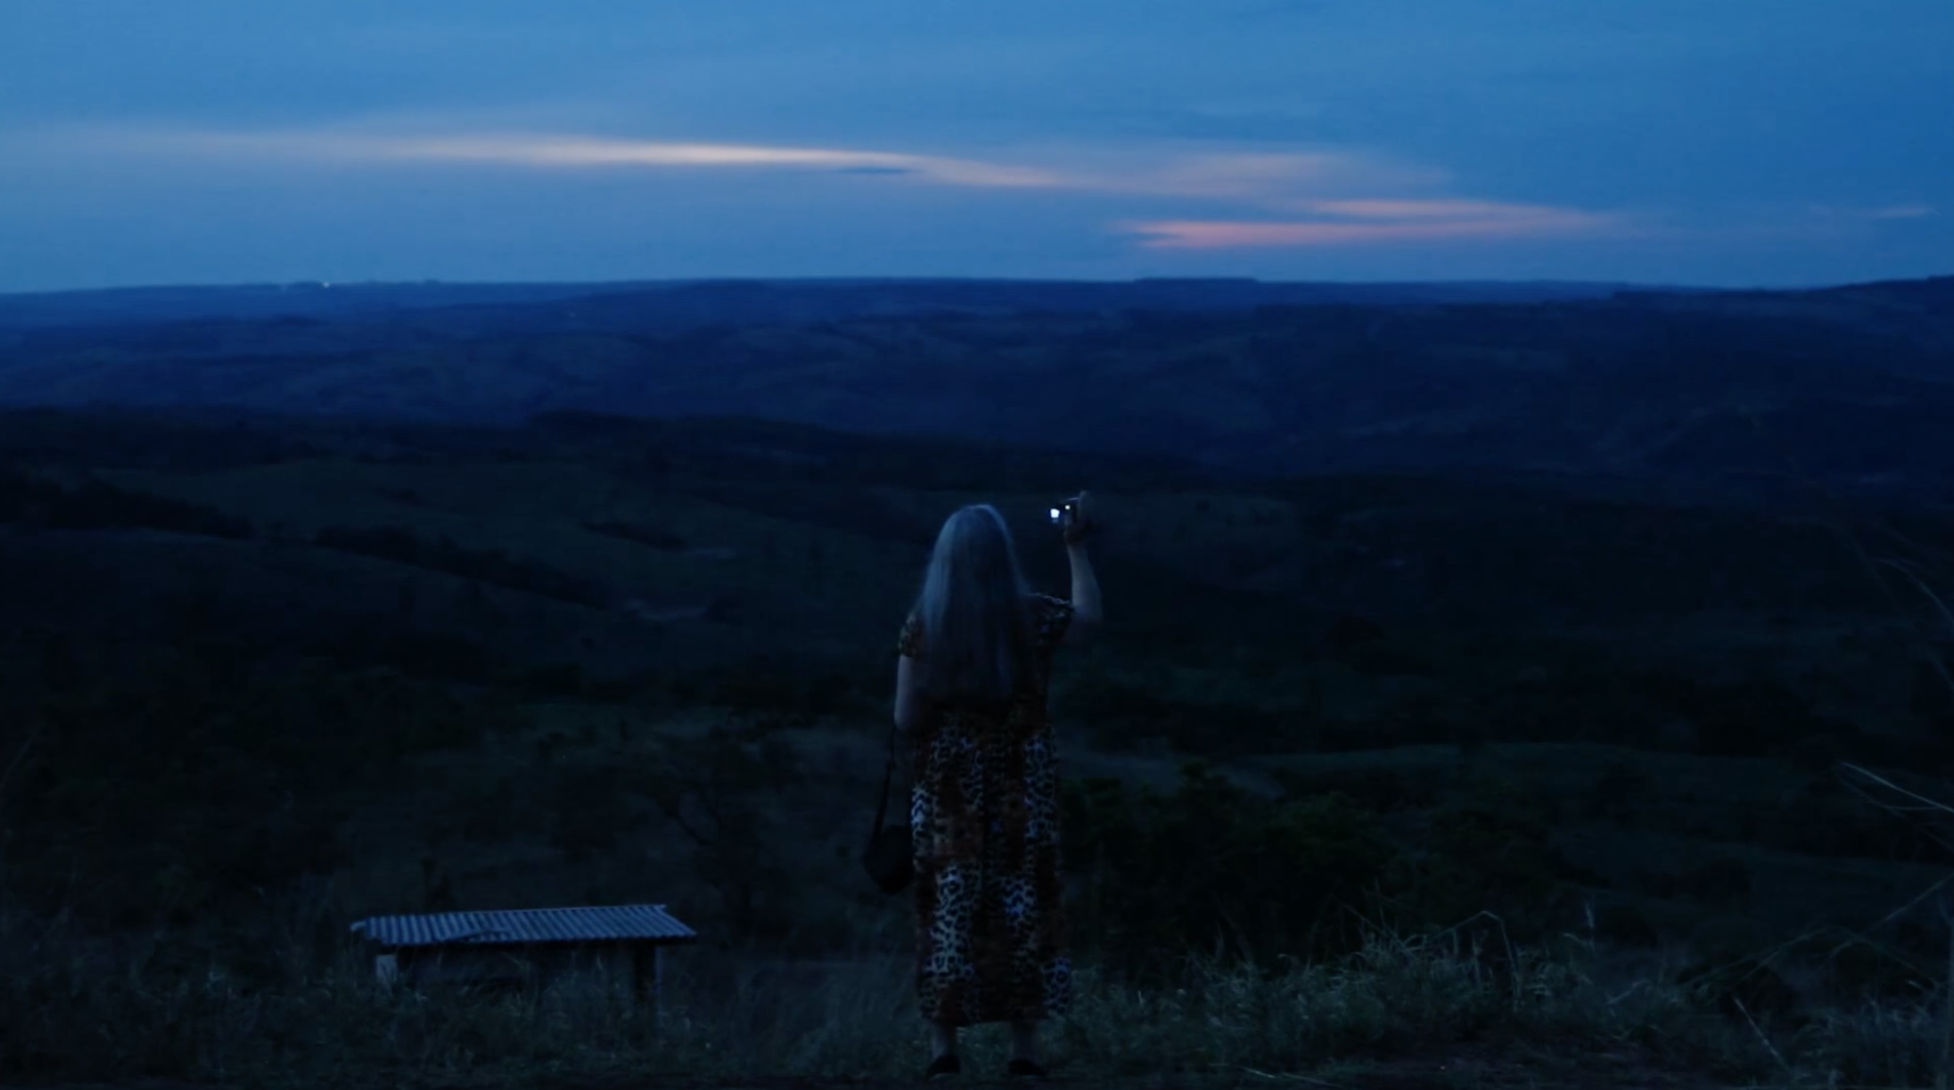 A woman stands on a ledge in front of a fresh night sky with low, blue light in front of an open frontier. She holds her phone up to photograph the scene.